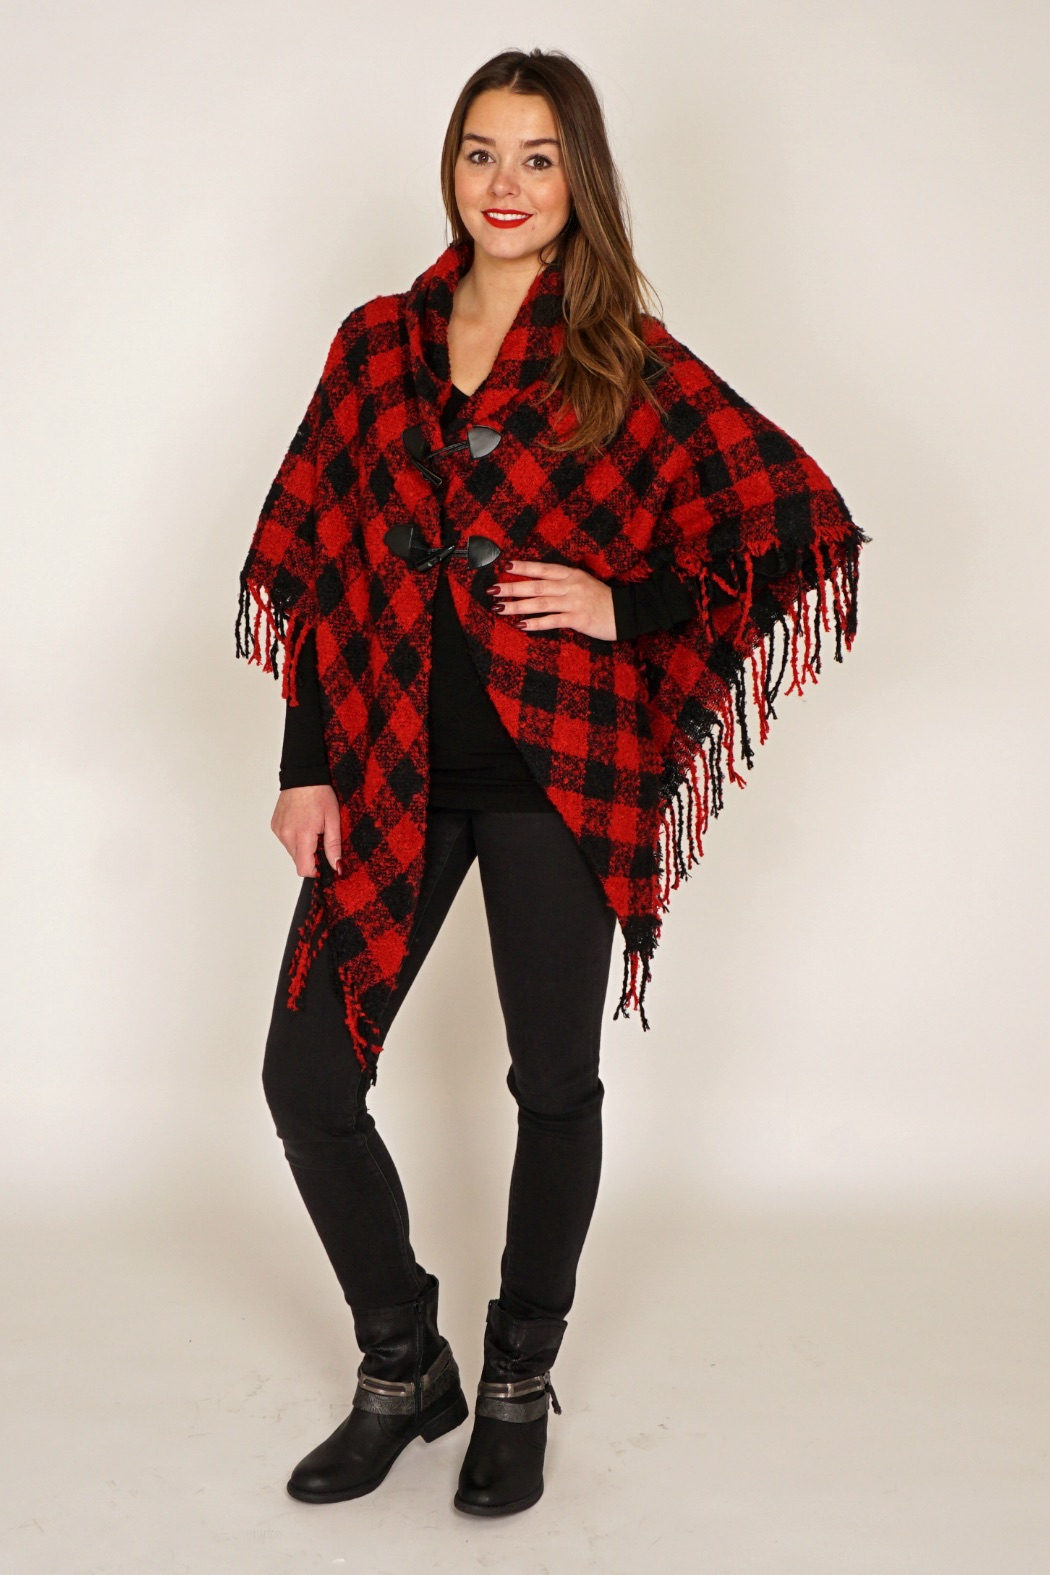 """There's always a must-have accessory that EVERYONE is obsessed with. Right now, it's all about the poncho! They're warm and cozy but stylish and chic. They can be long, cropped, colourful, or classic but every style gives such an """"I know what I'm doing"""" look. You put on a poncho and suddenly you feel more chic and put together. It works well with nearly everything in your wardrobe. Ponchos can be tailored for a chic, formal and/or professional style or be bohemian in thicker knits, colourful patterns, and/or tassels and fringes."""